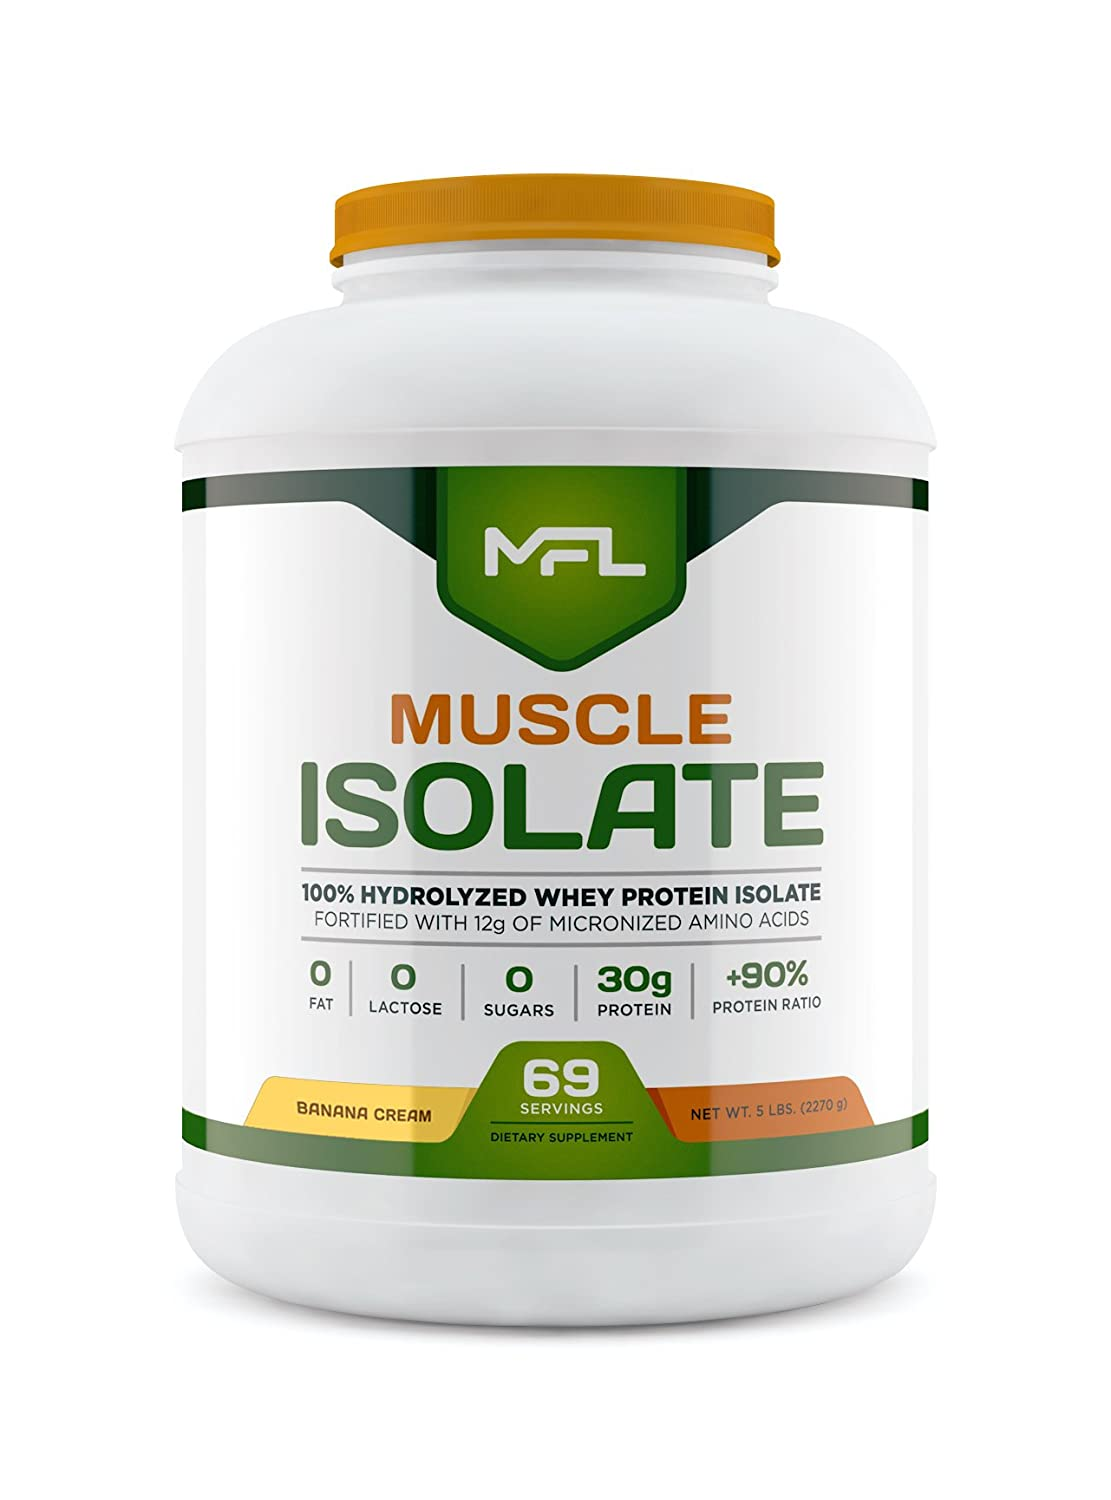 Amazon.com: Muscular, alimentos Labs aislar, 5 pounds, 1 ...